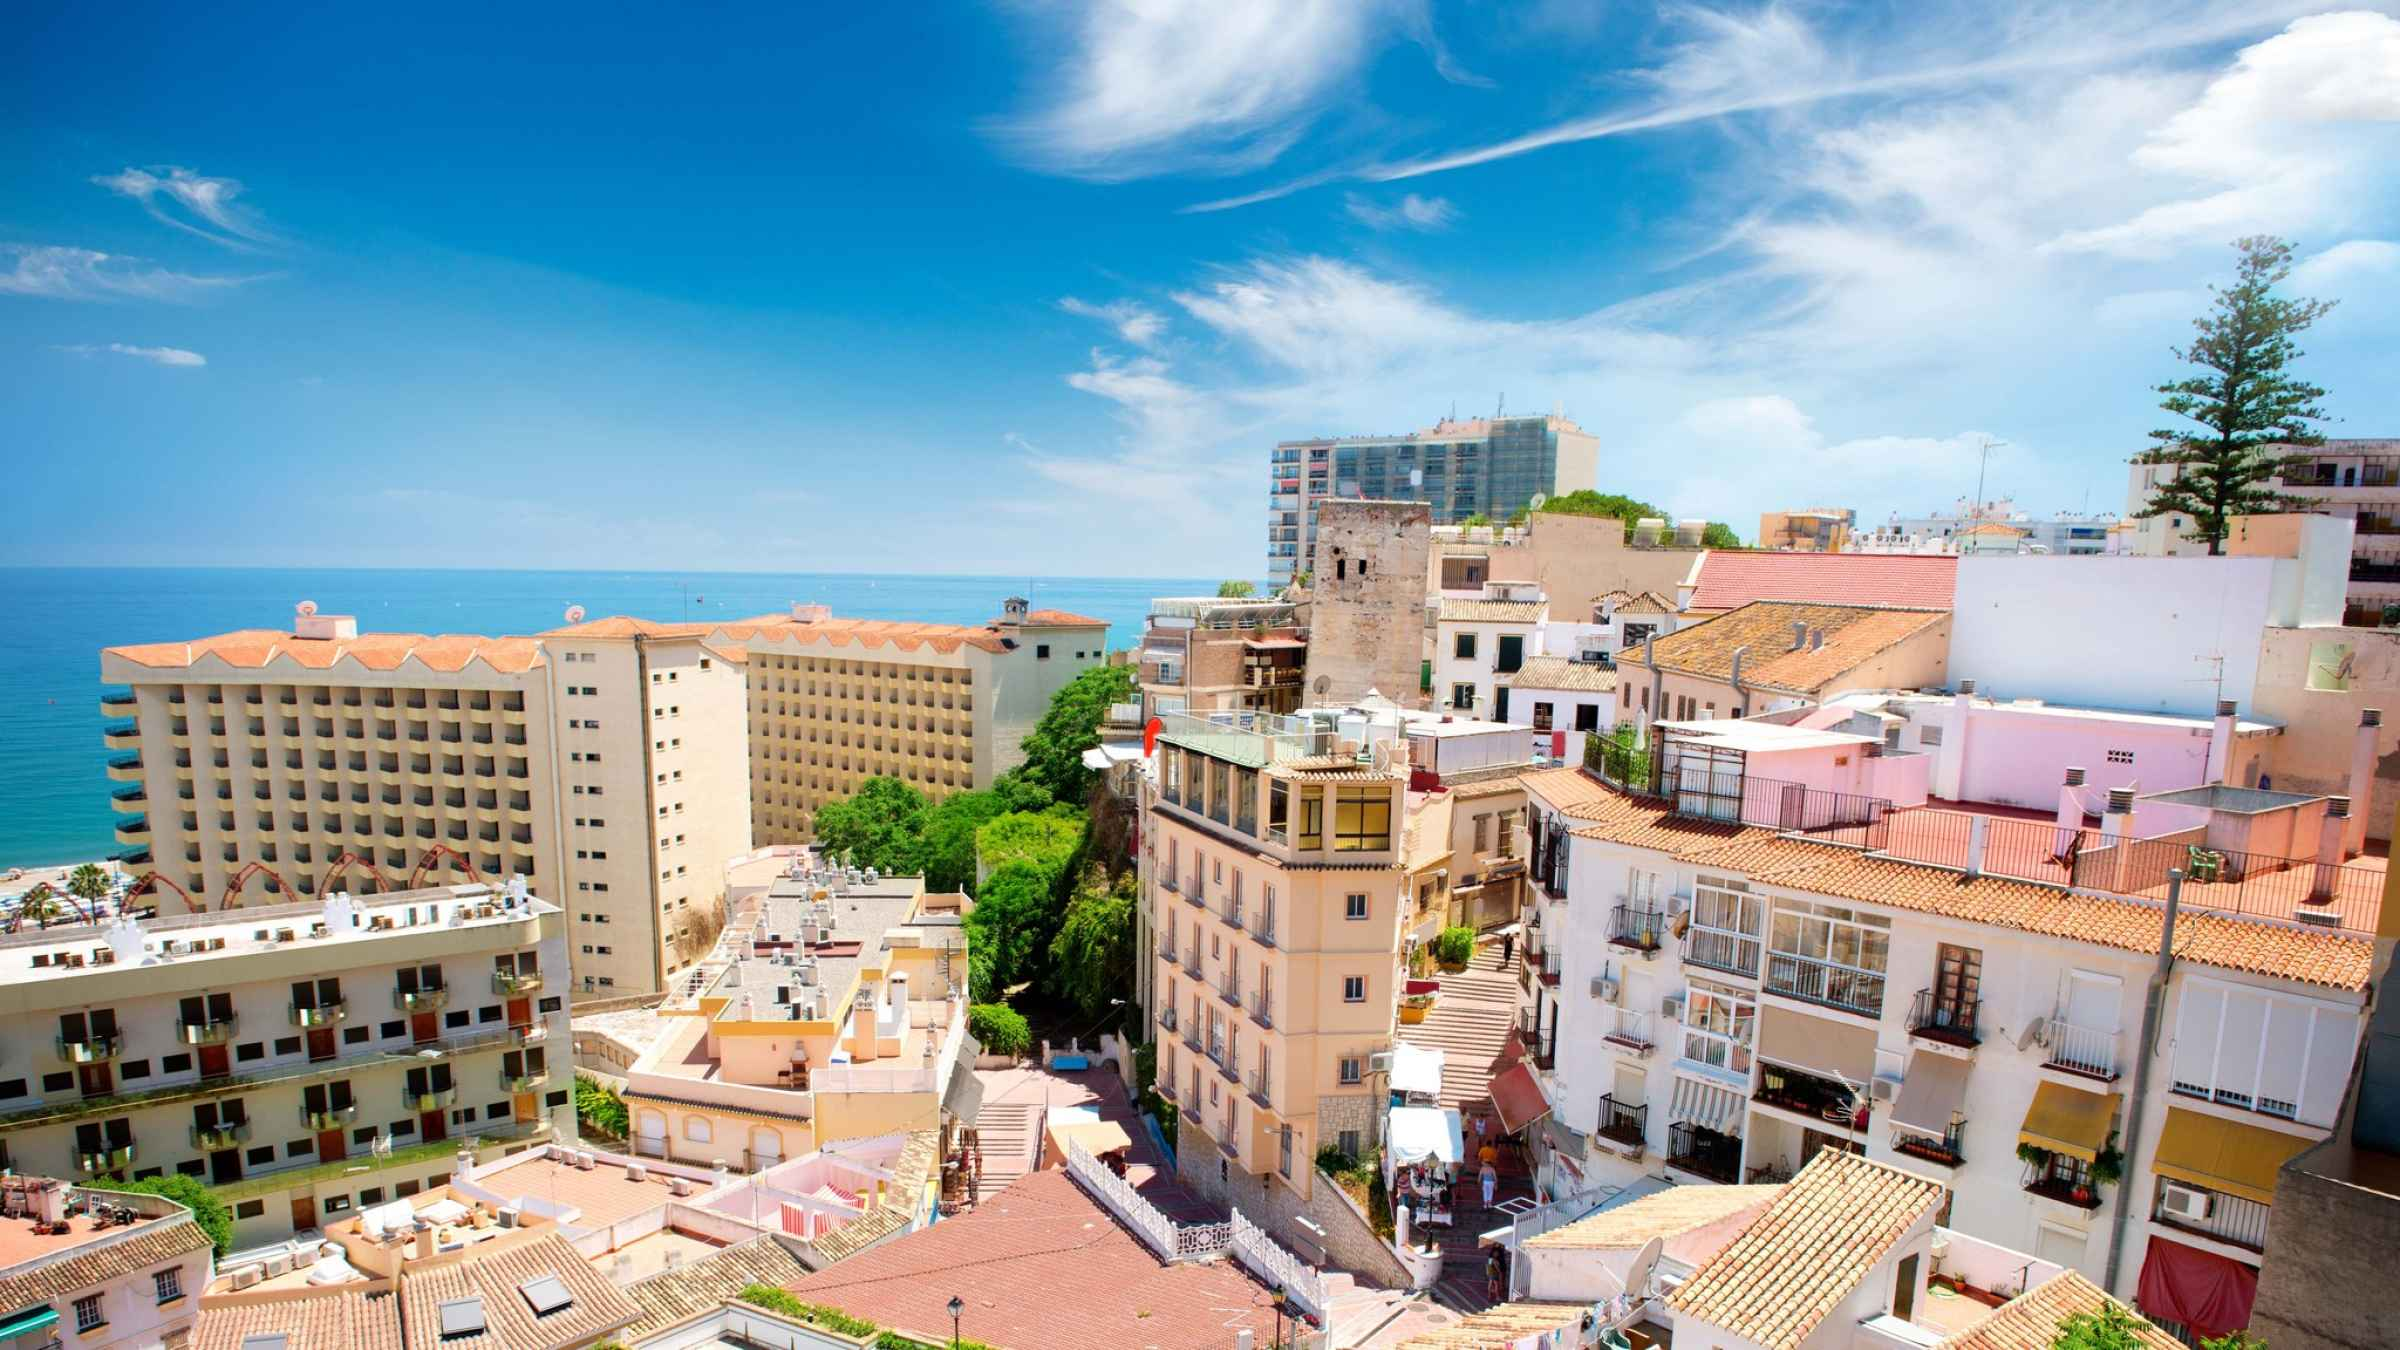 Torremolinos 2021 Top 10 Tours Activities With Photos Things To Do In Torremolinos Spain Getyourguide